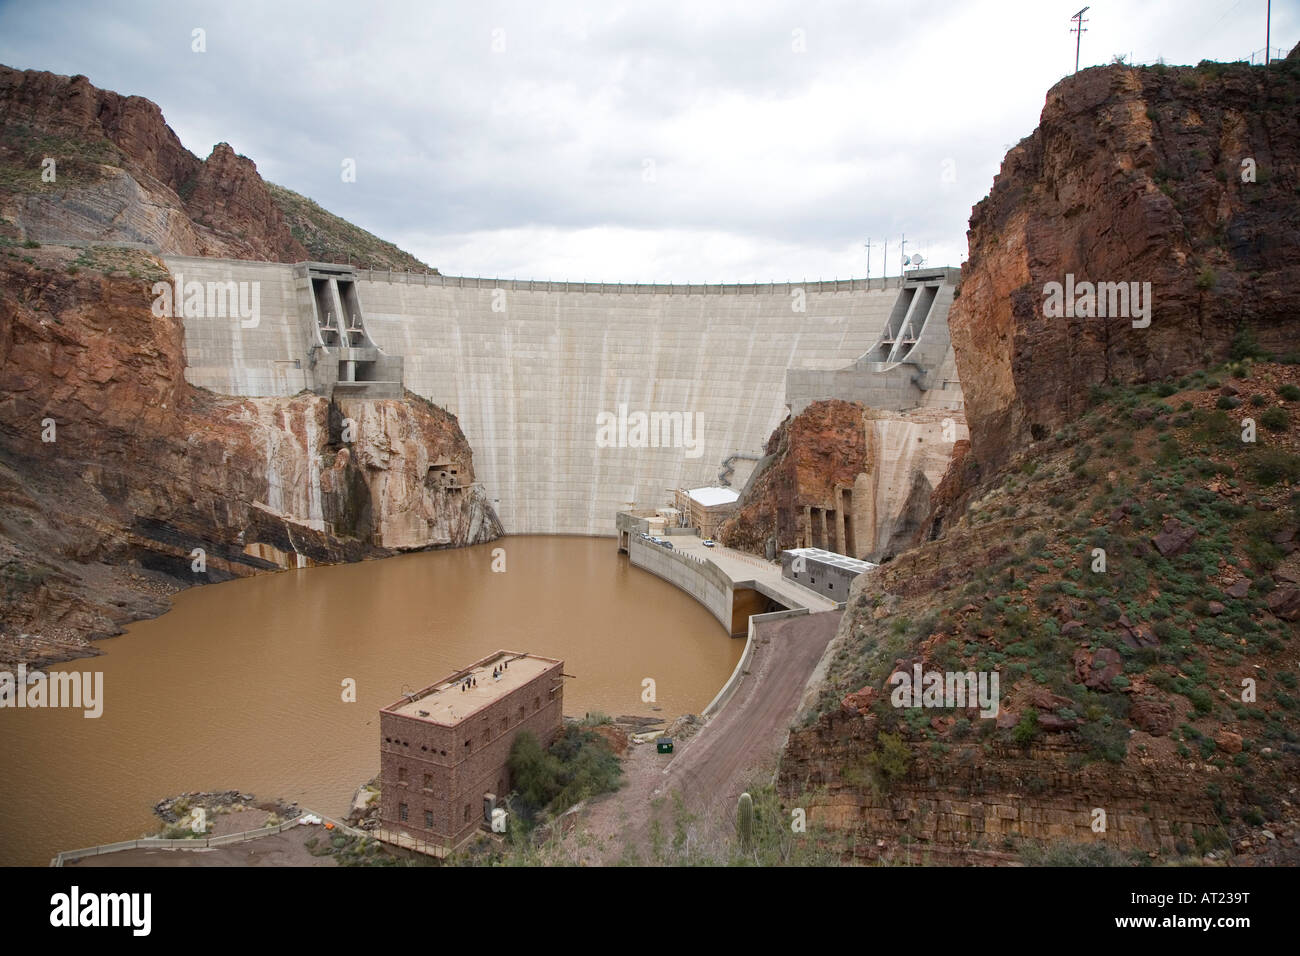 Theodore Roosevelt Dam, part of the water supply system for Phoenix - Stock Image